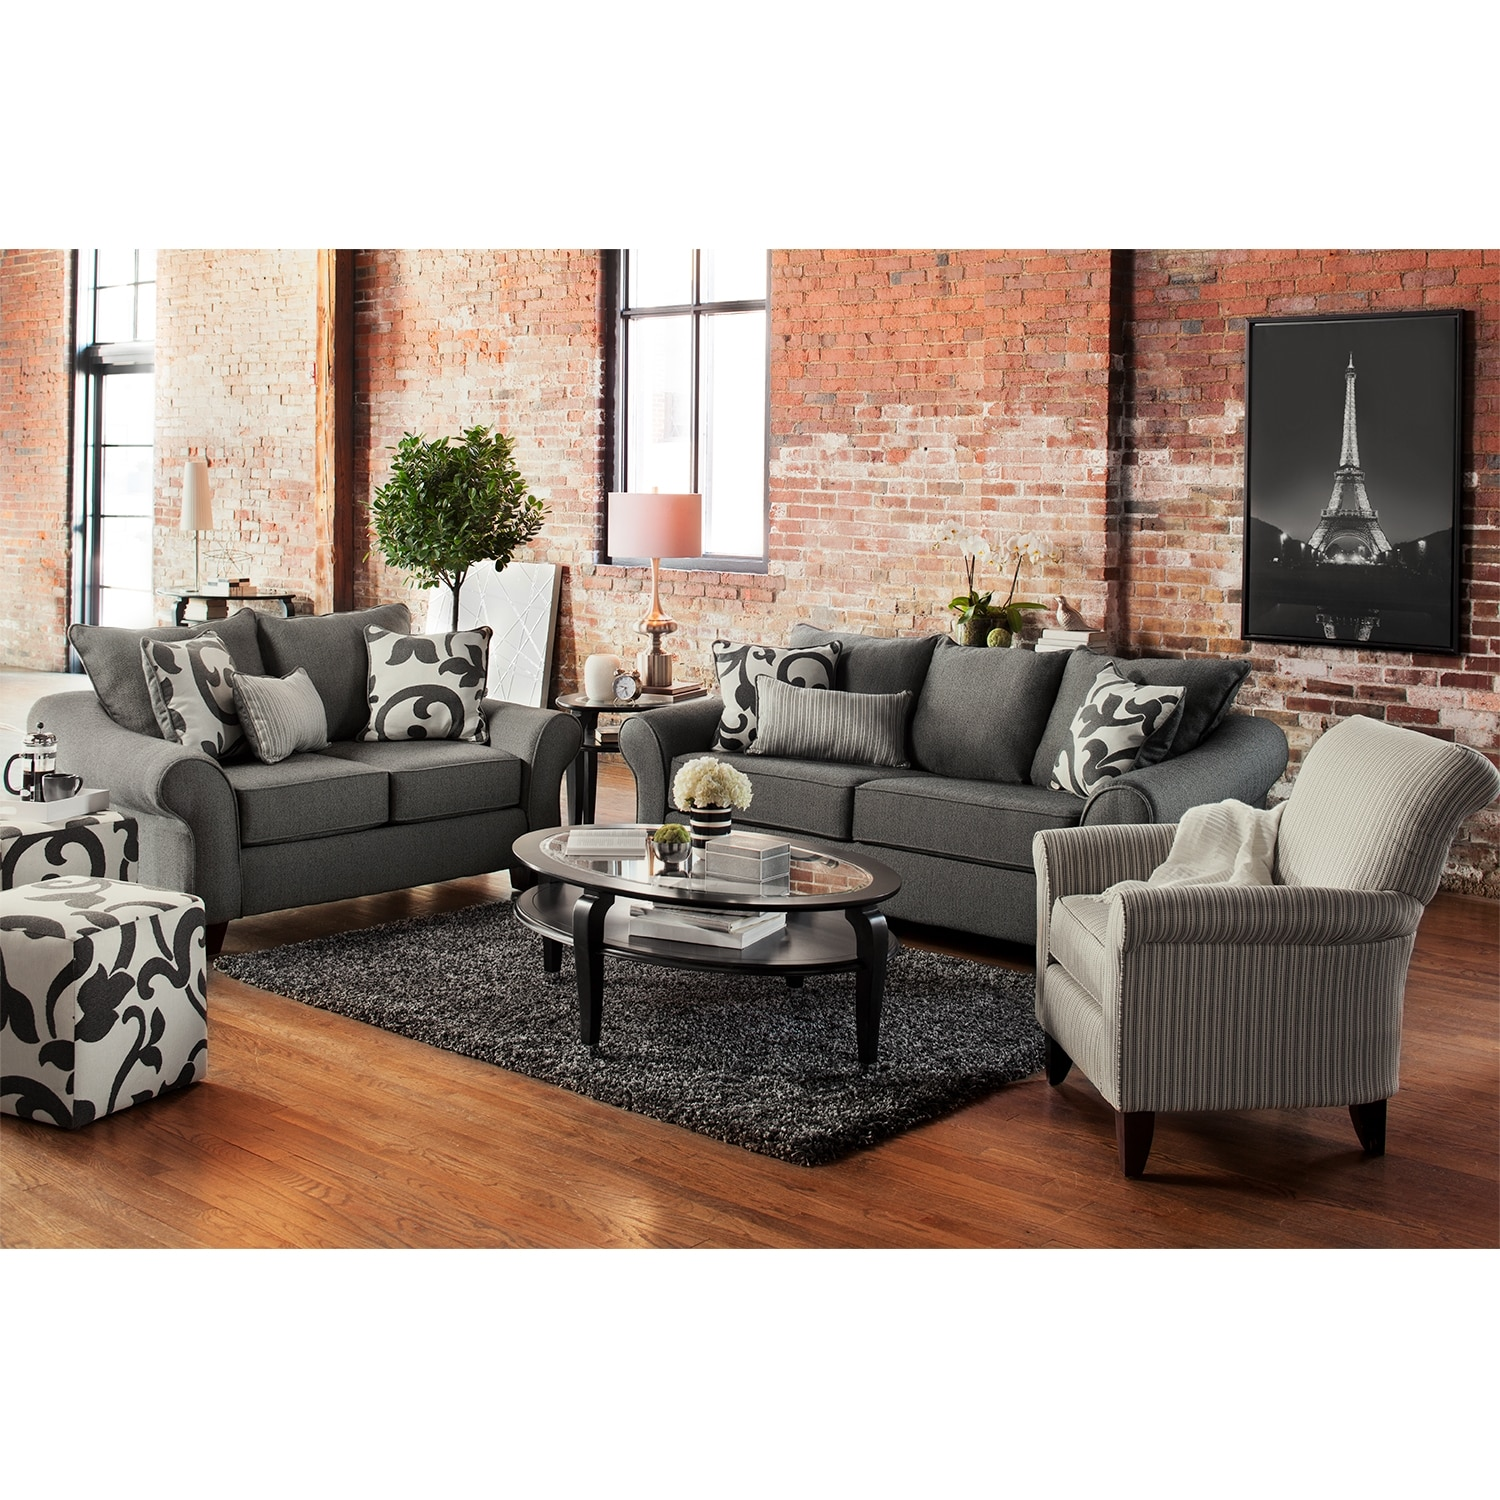 Colette gray sofa value city furniture for Living room sofa